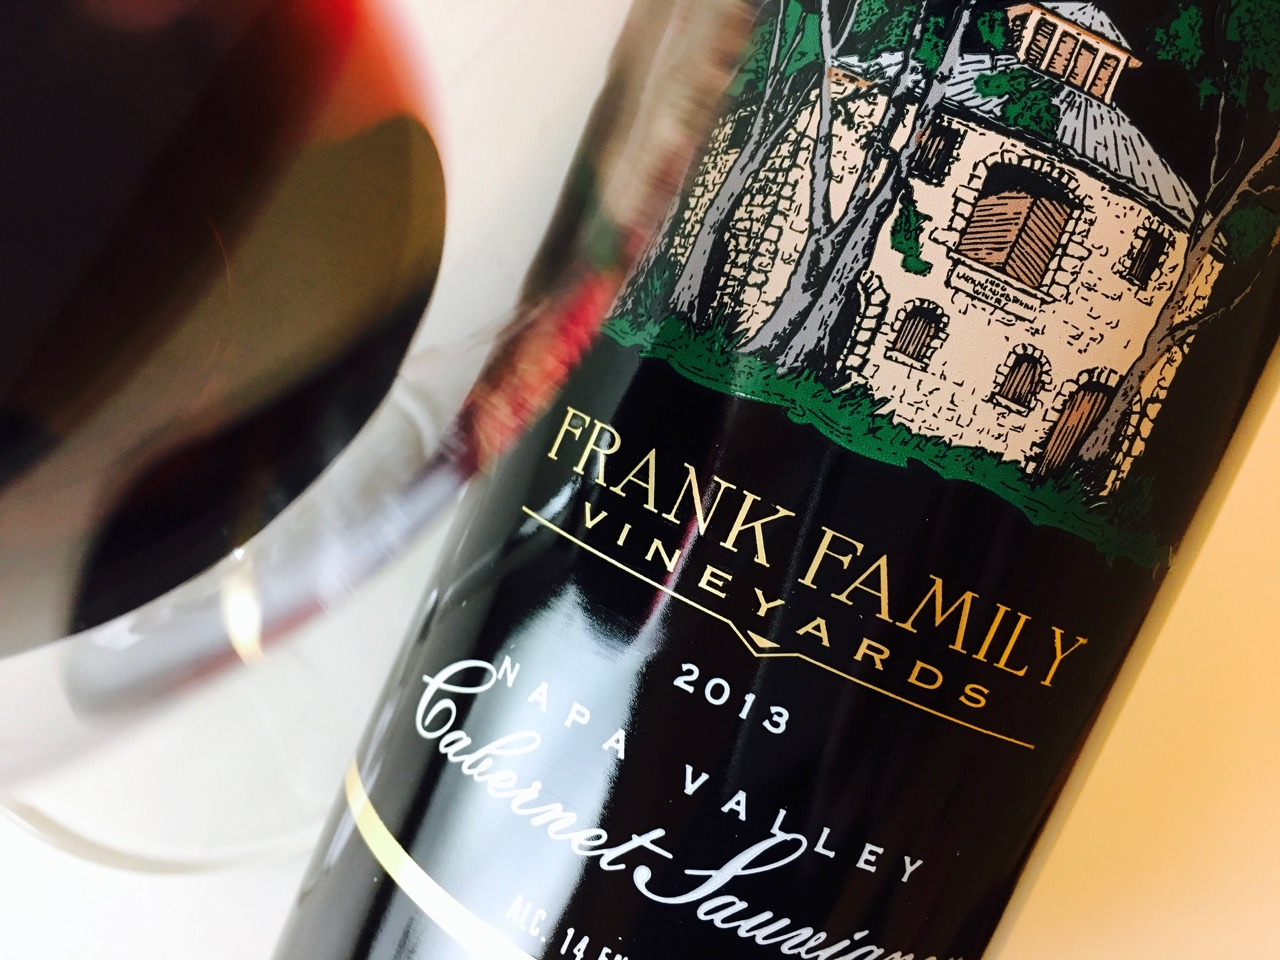 2013 Frank Family Vineyards Cabernet Sauvignon Napa Valley